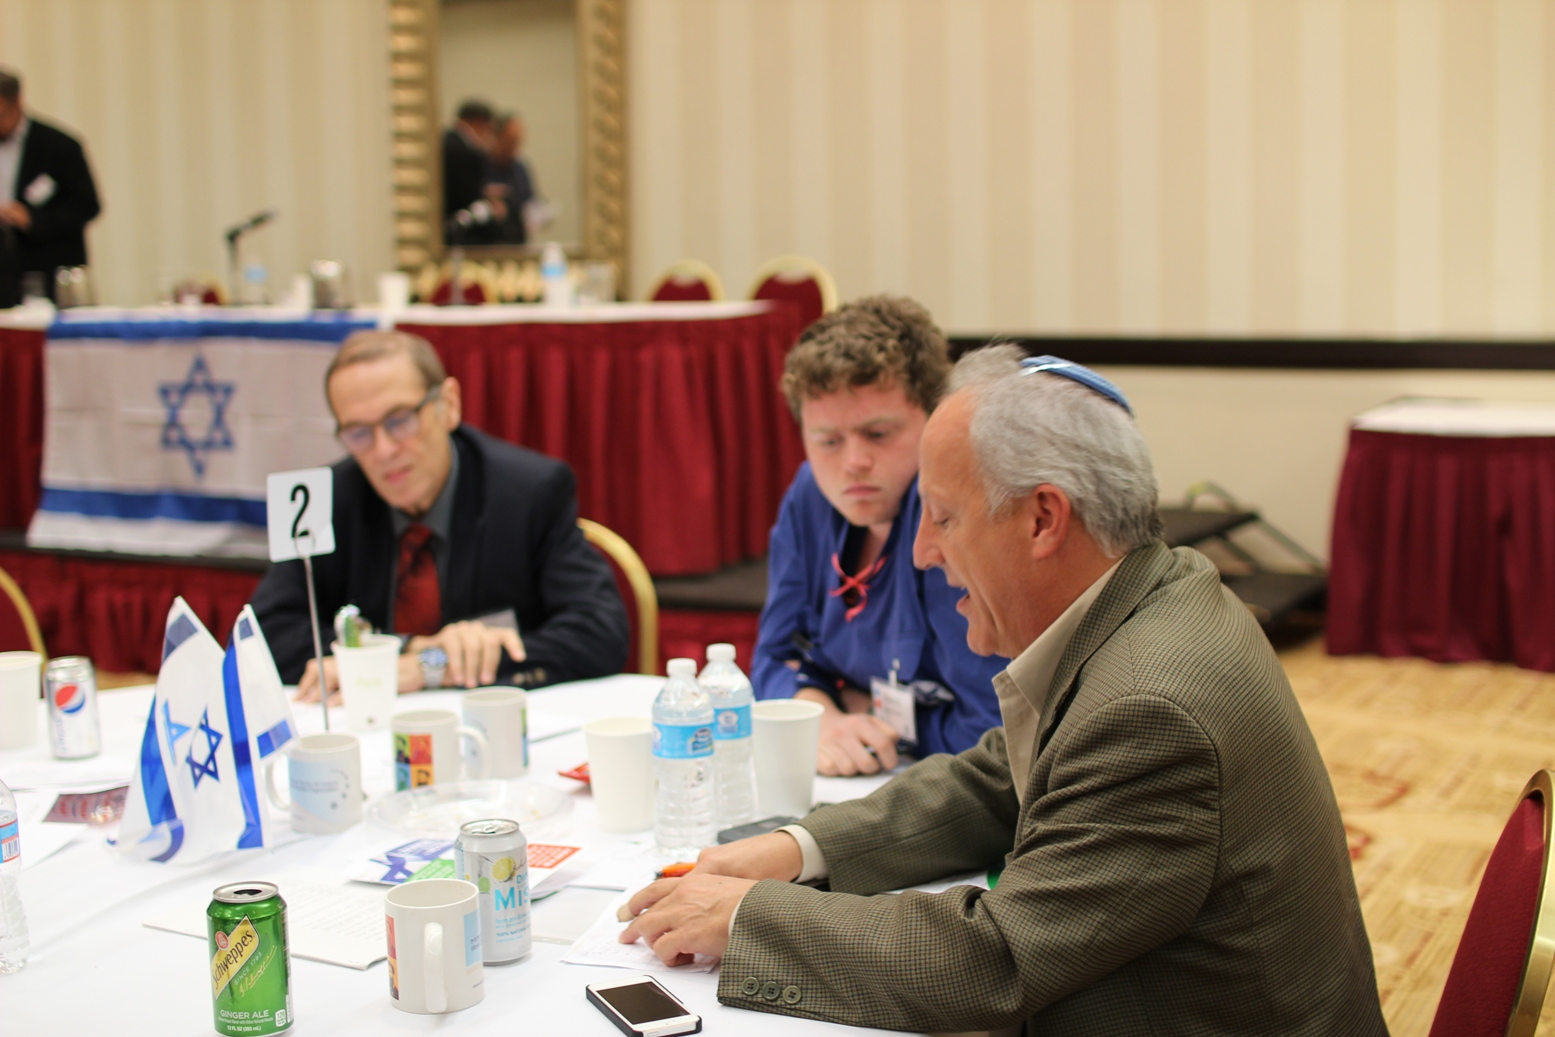 Aryeh Green, director of Media Central, conducts a group discussion